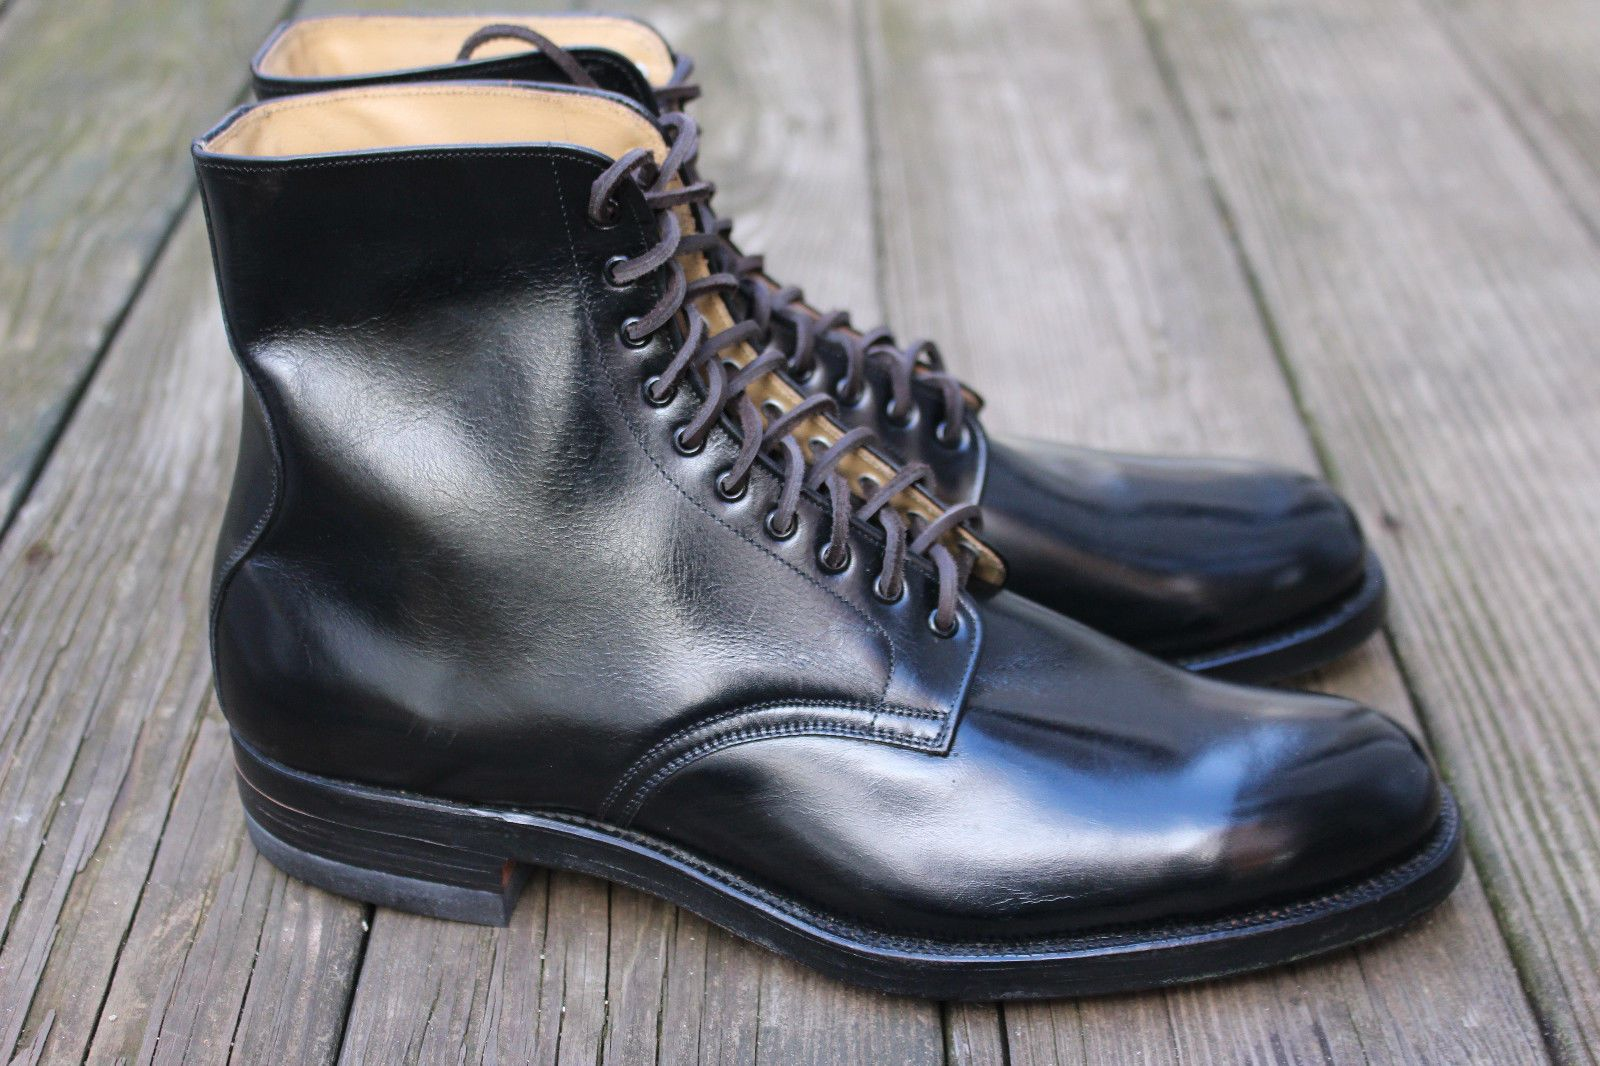 Vintage Mens 1950s Dress Boots 10 Wingfoot Goodyear Shoes USA Deadstock Military in Clothing, Shoes & Accessories, Men's Shoes, Boots | eBay